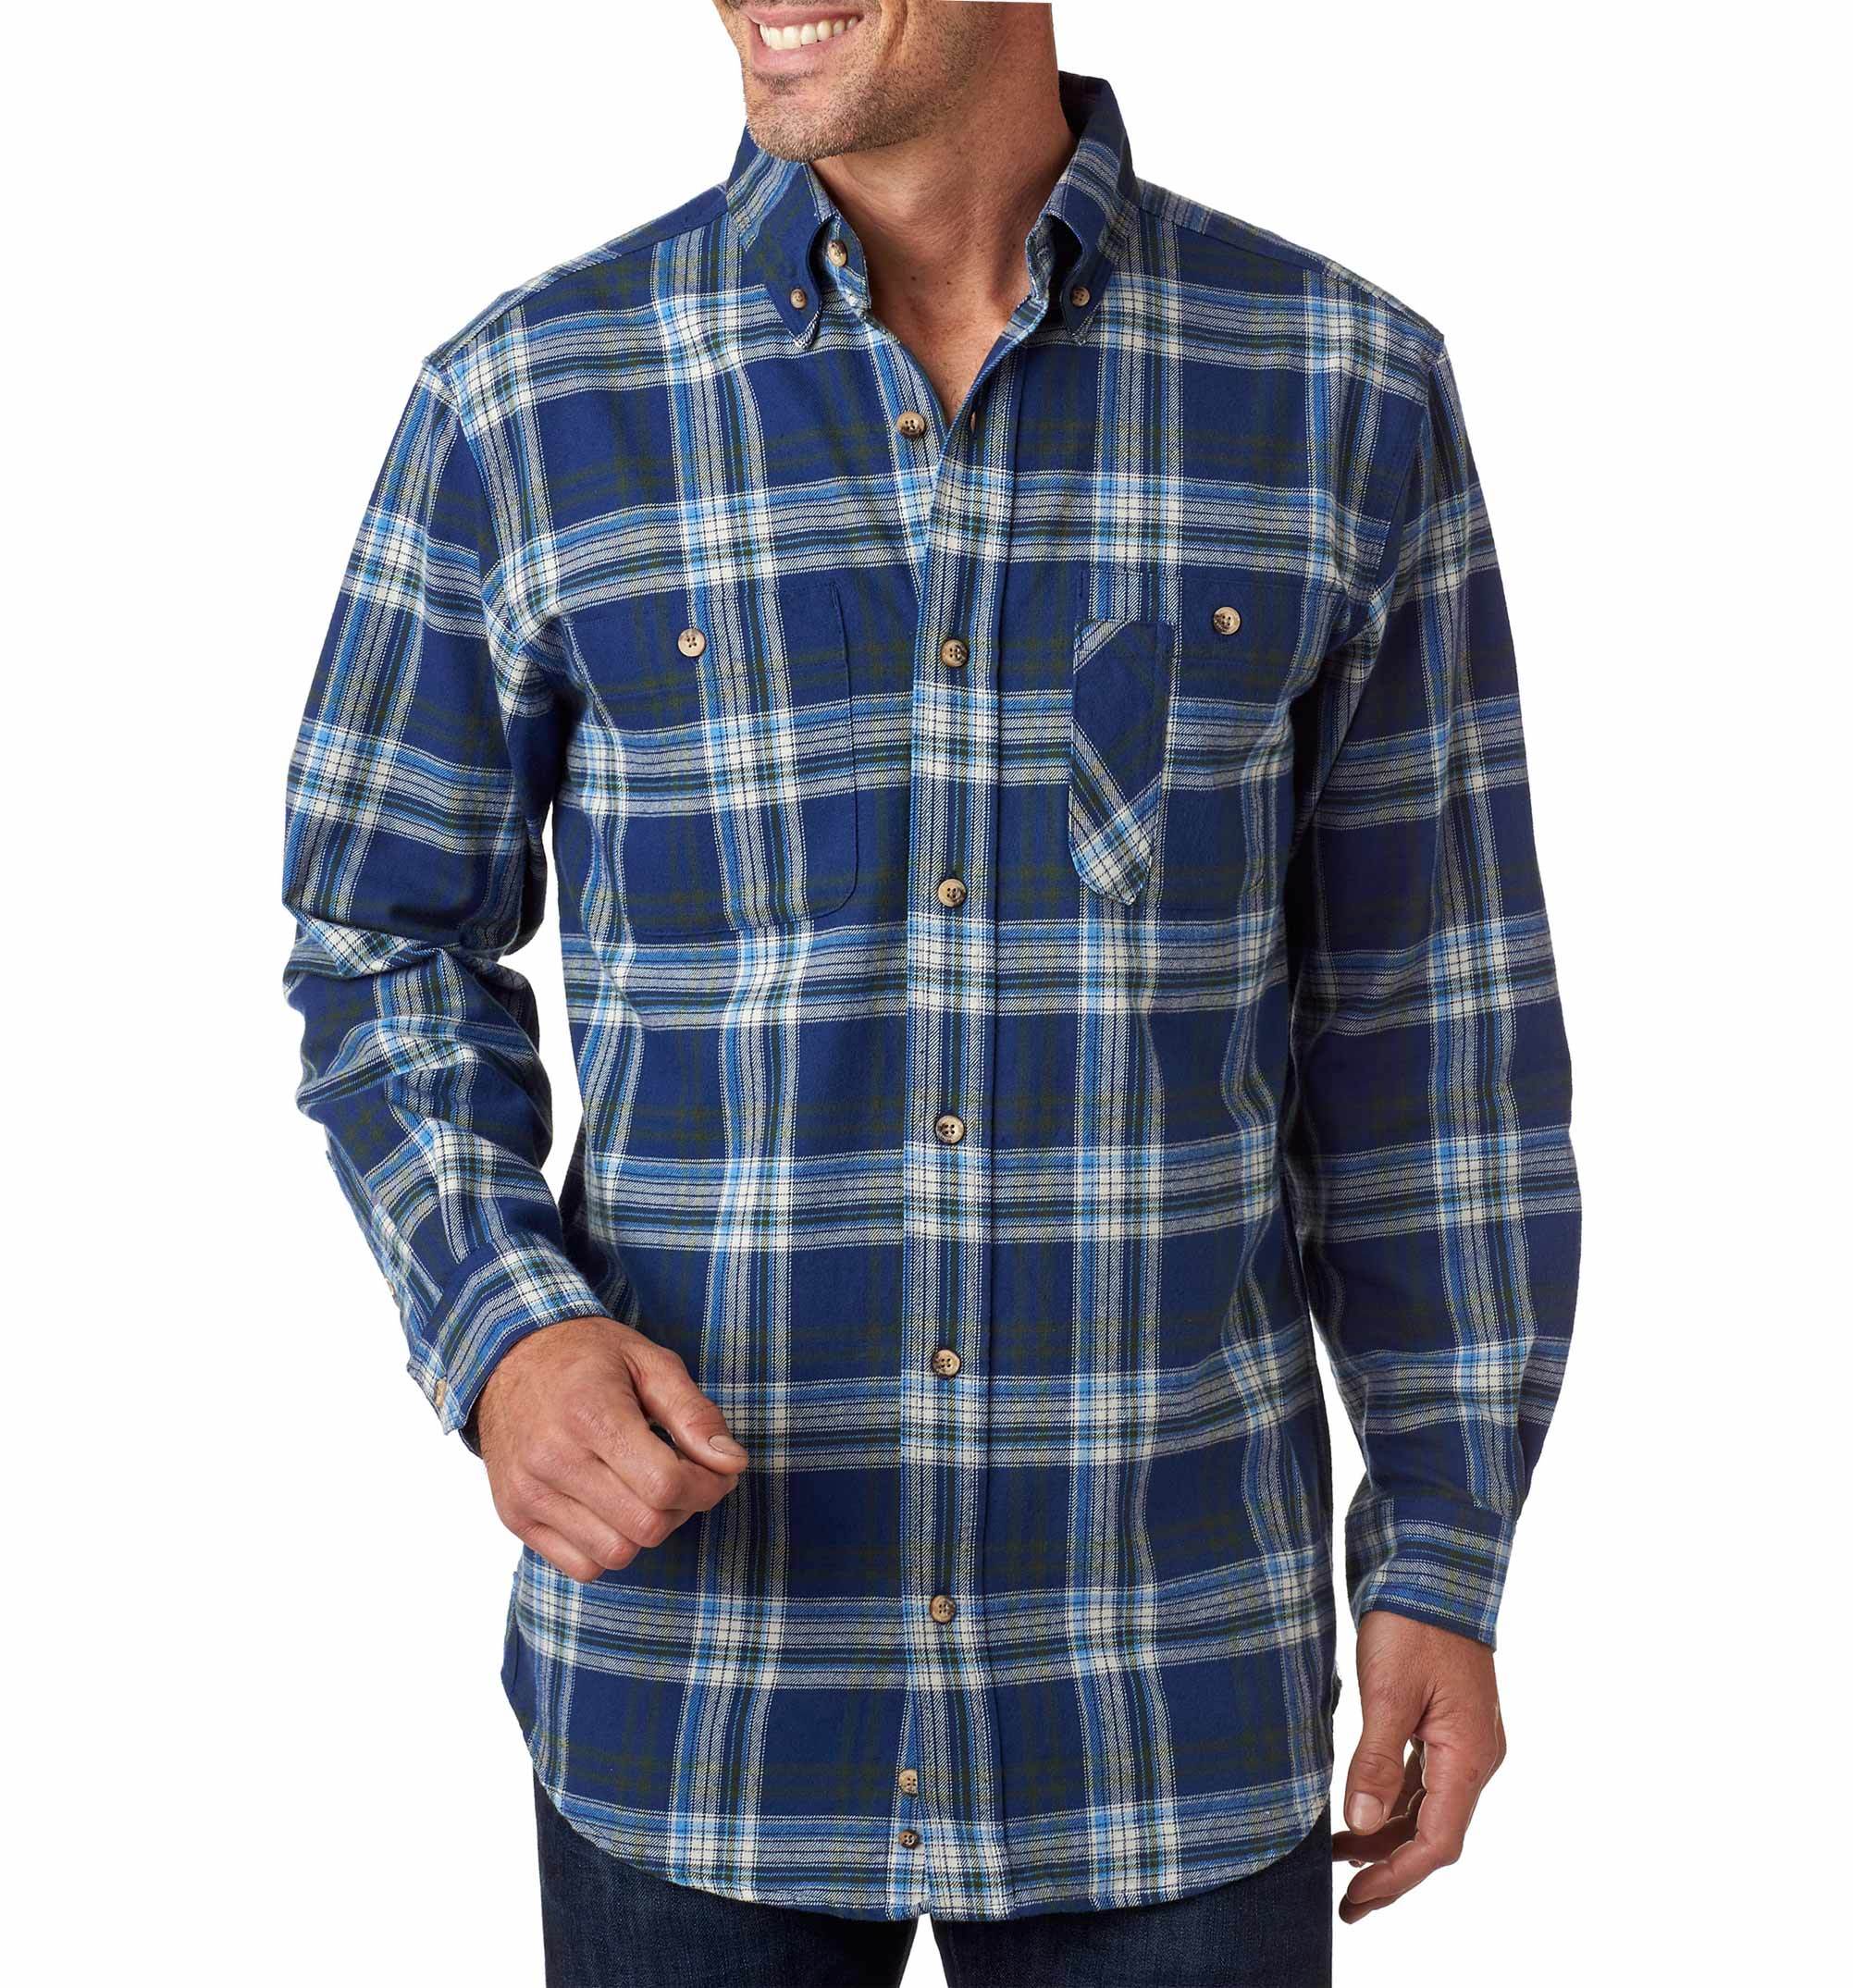 d1960de17 Backpacker Mens Yarn-Dyed Flannel Shirt - Design Online or Buy It Blank